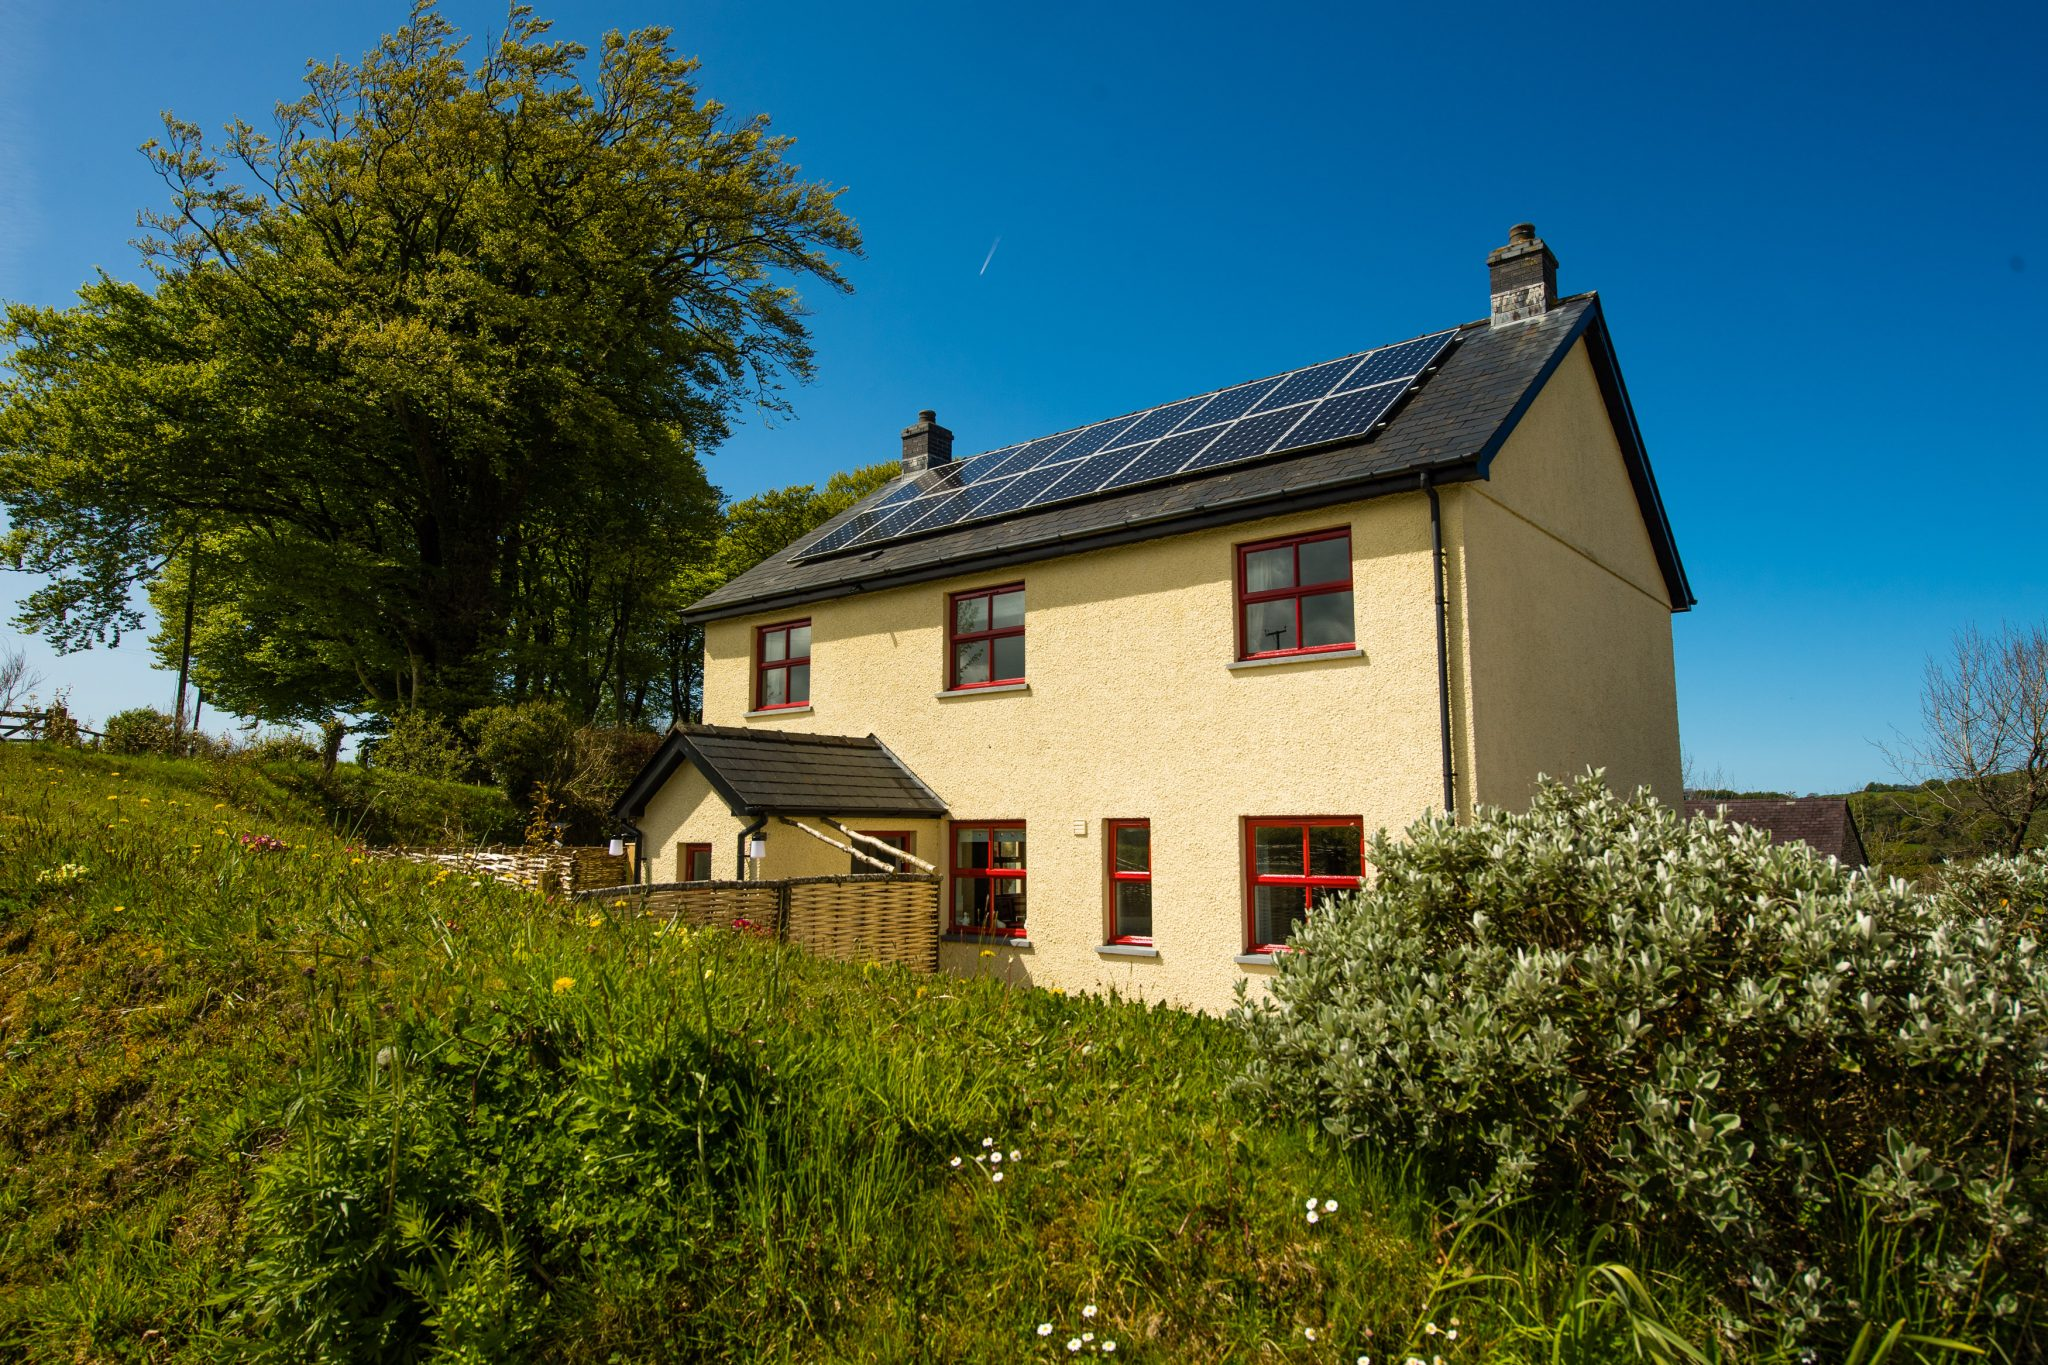 Treberfedd Farm holiday accommodation , organic farm  and conference centre Dihewyd, Aeron valley, Ceredigion, Wales UK www.treberfedd.co.uk 01570 470672 May 08-10 2018  ©keith morris photography www.artswebwales.com  keith@artx.co.uk  07710 285968 01970 611106